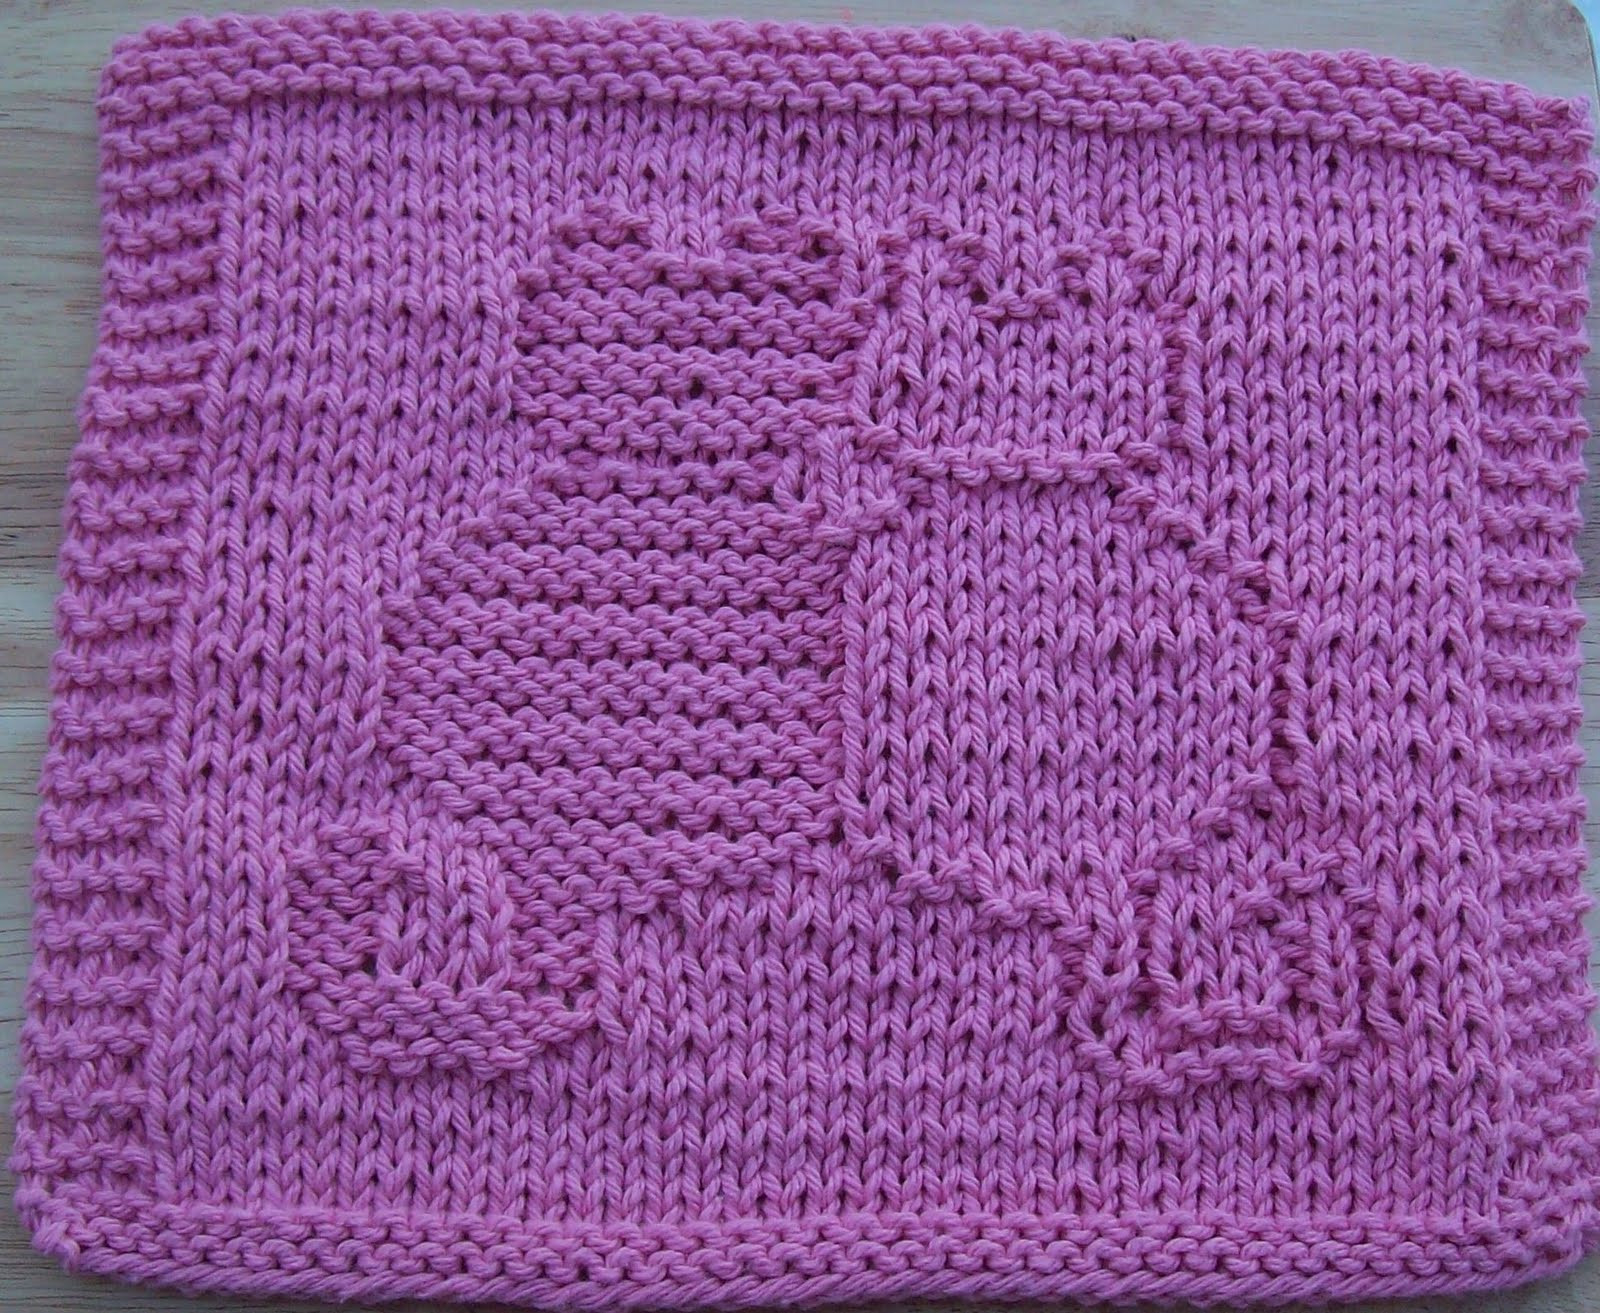 DigKnitty Designs Snuggling Cats Knit Dishcloth Pattern